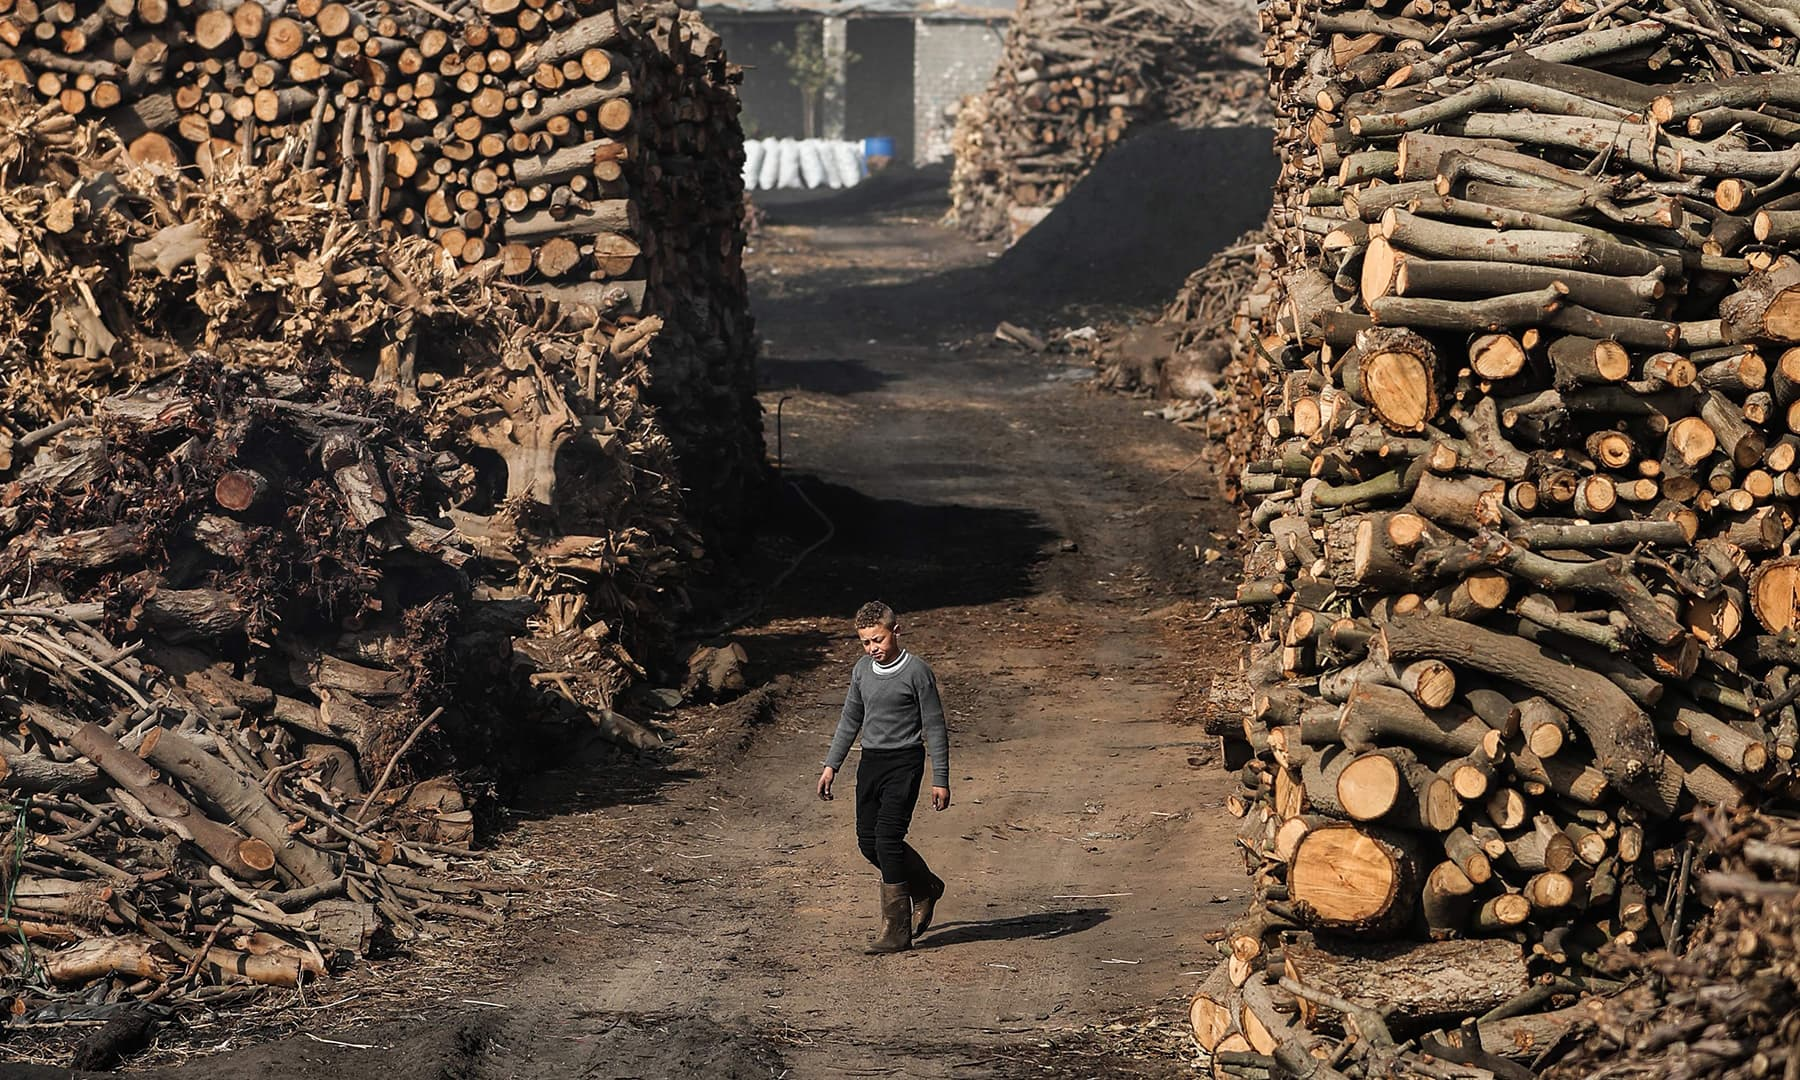 A young Egyptian labourer walks at a charcoal factory in Egypt's Sharkia governorate. — AFP